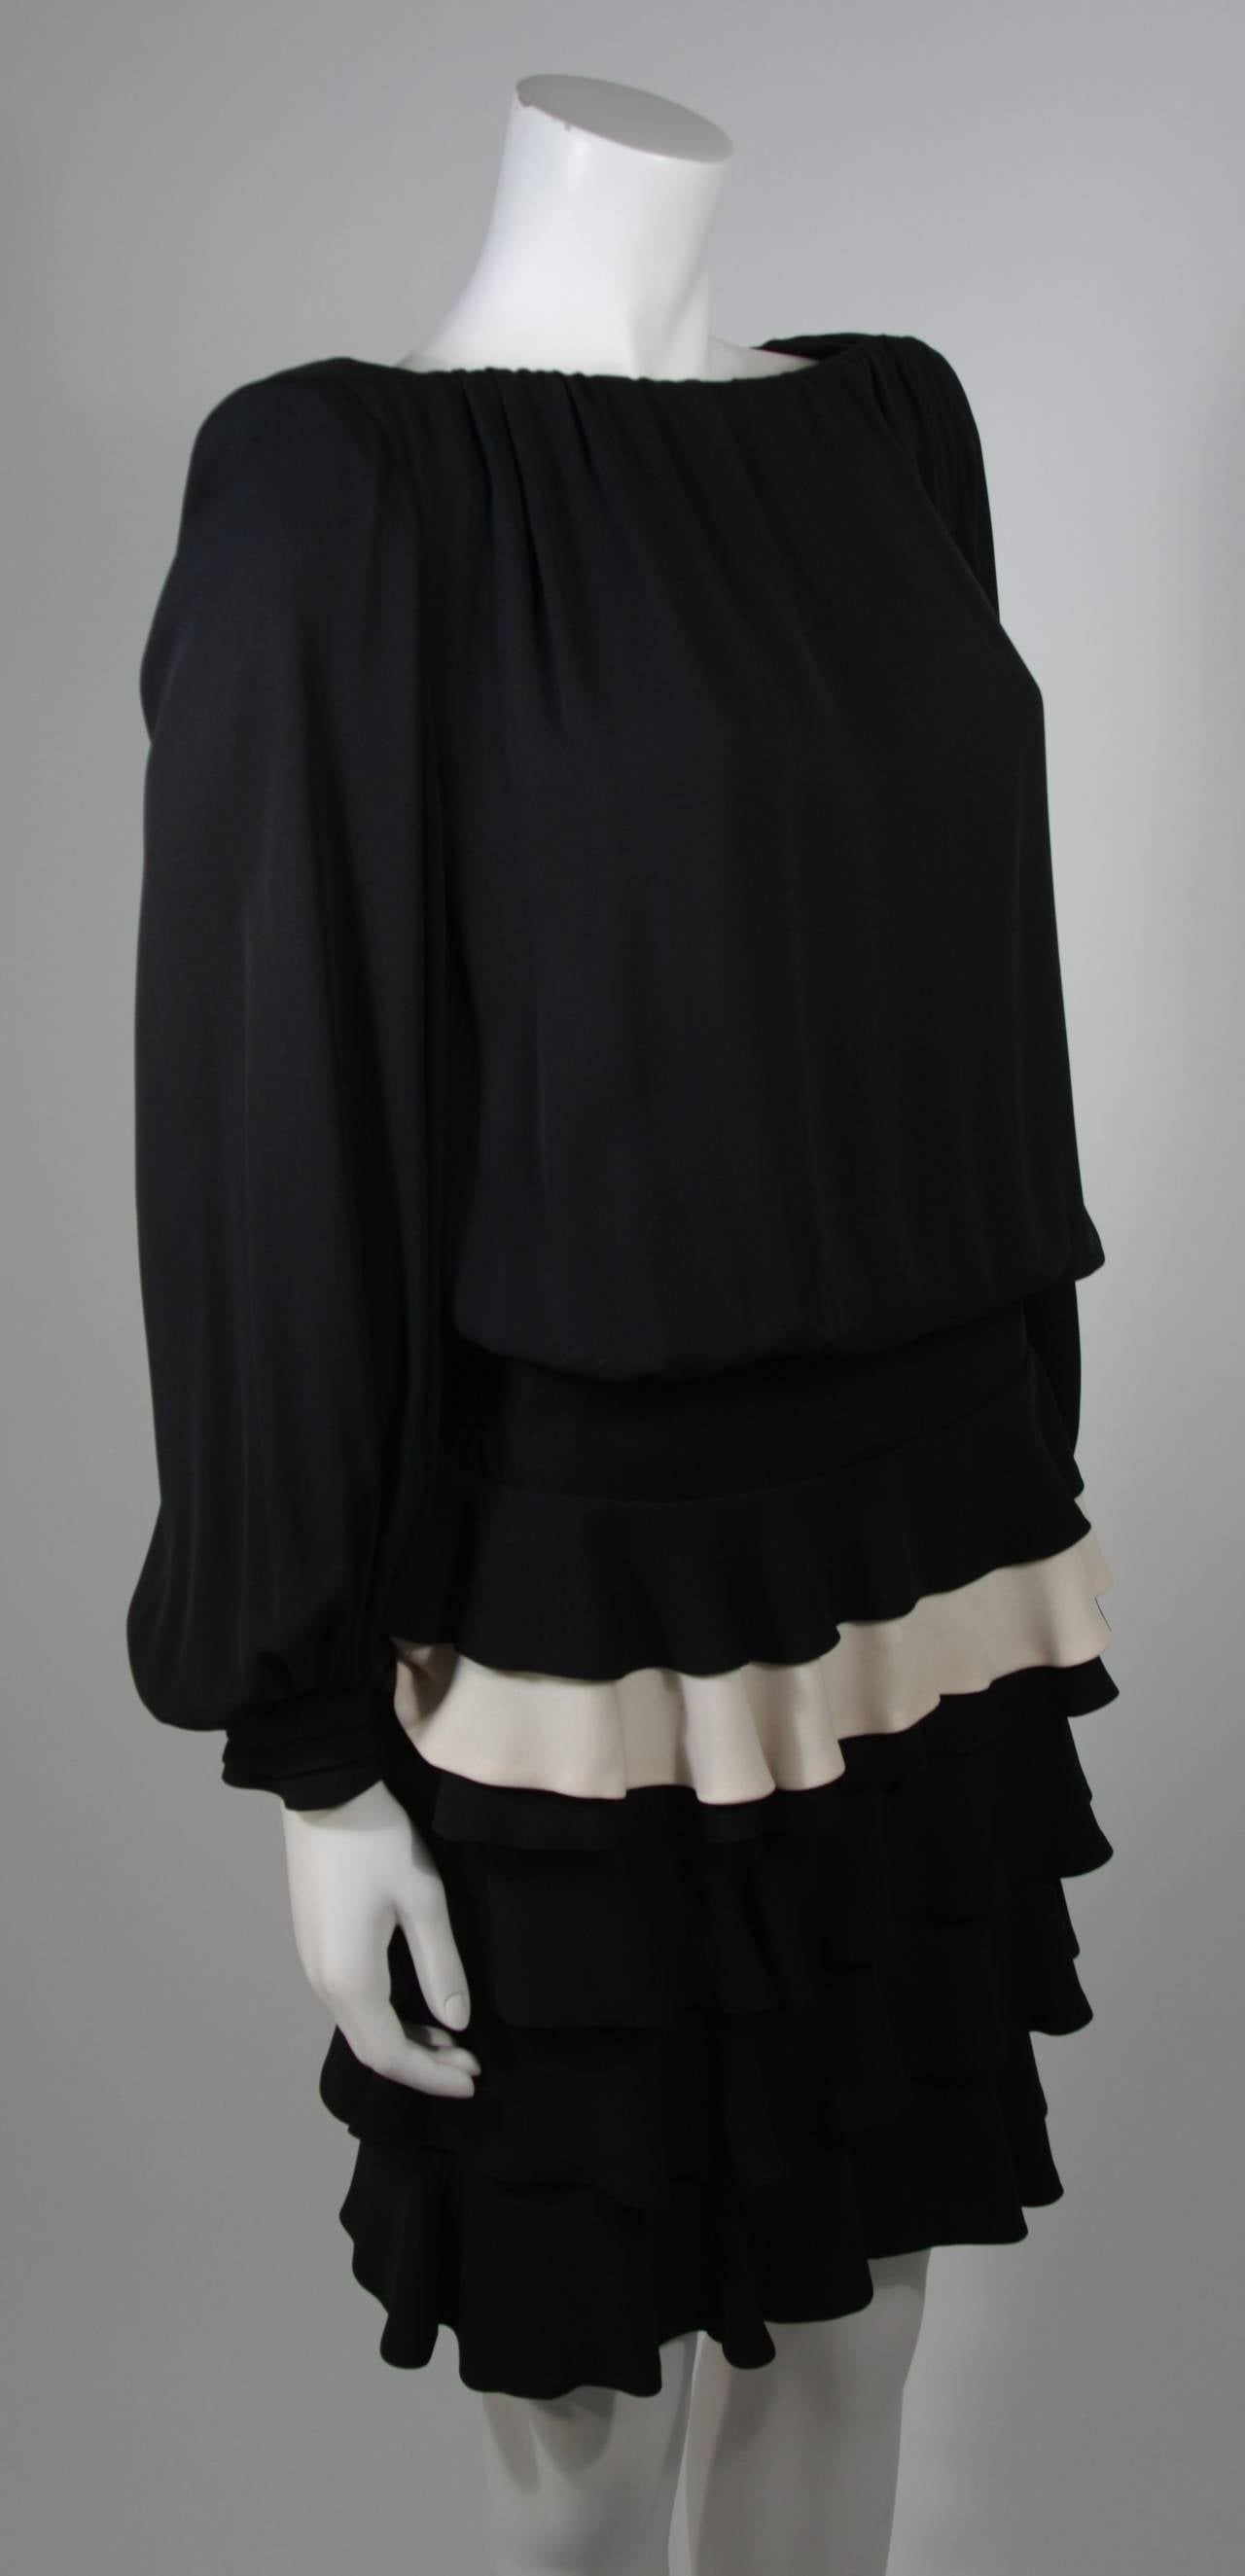 Galanos Black and Cream Ruffled Cocktail Dress with Dramatic Neckline Size 2 5